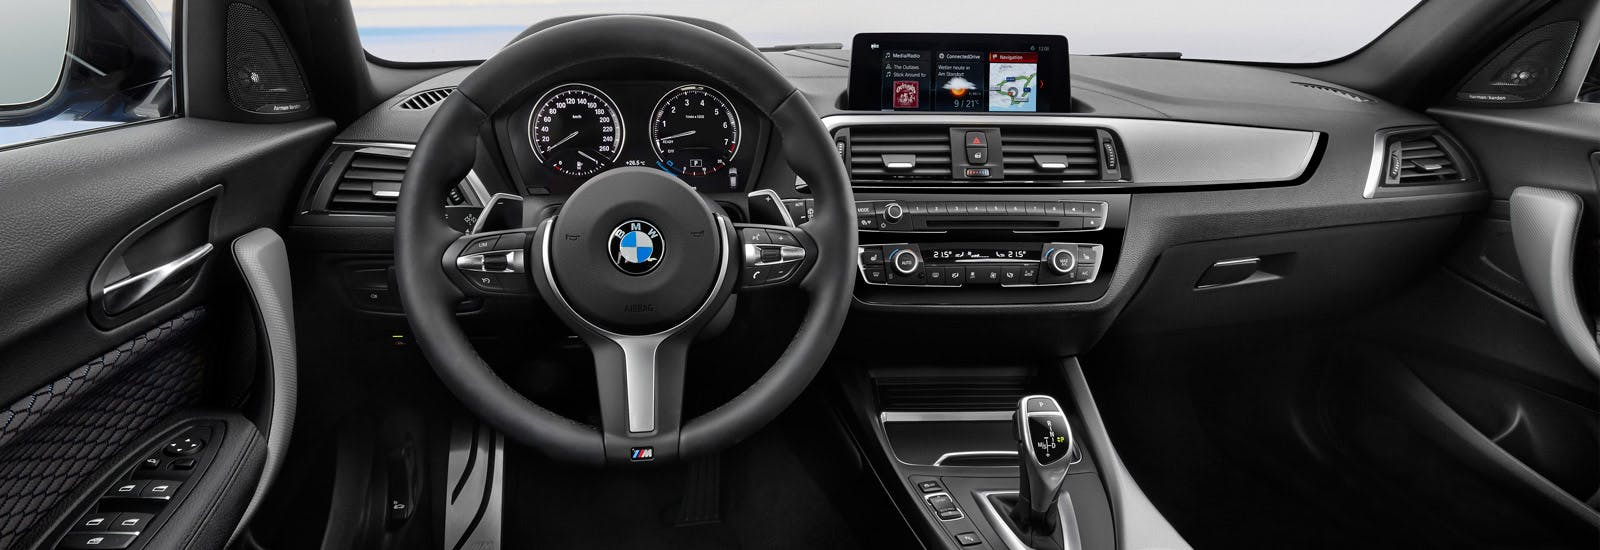 Bmw 1 Series 2017 Facelift Complete Guide Carwow